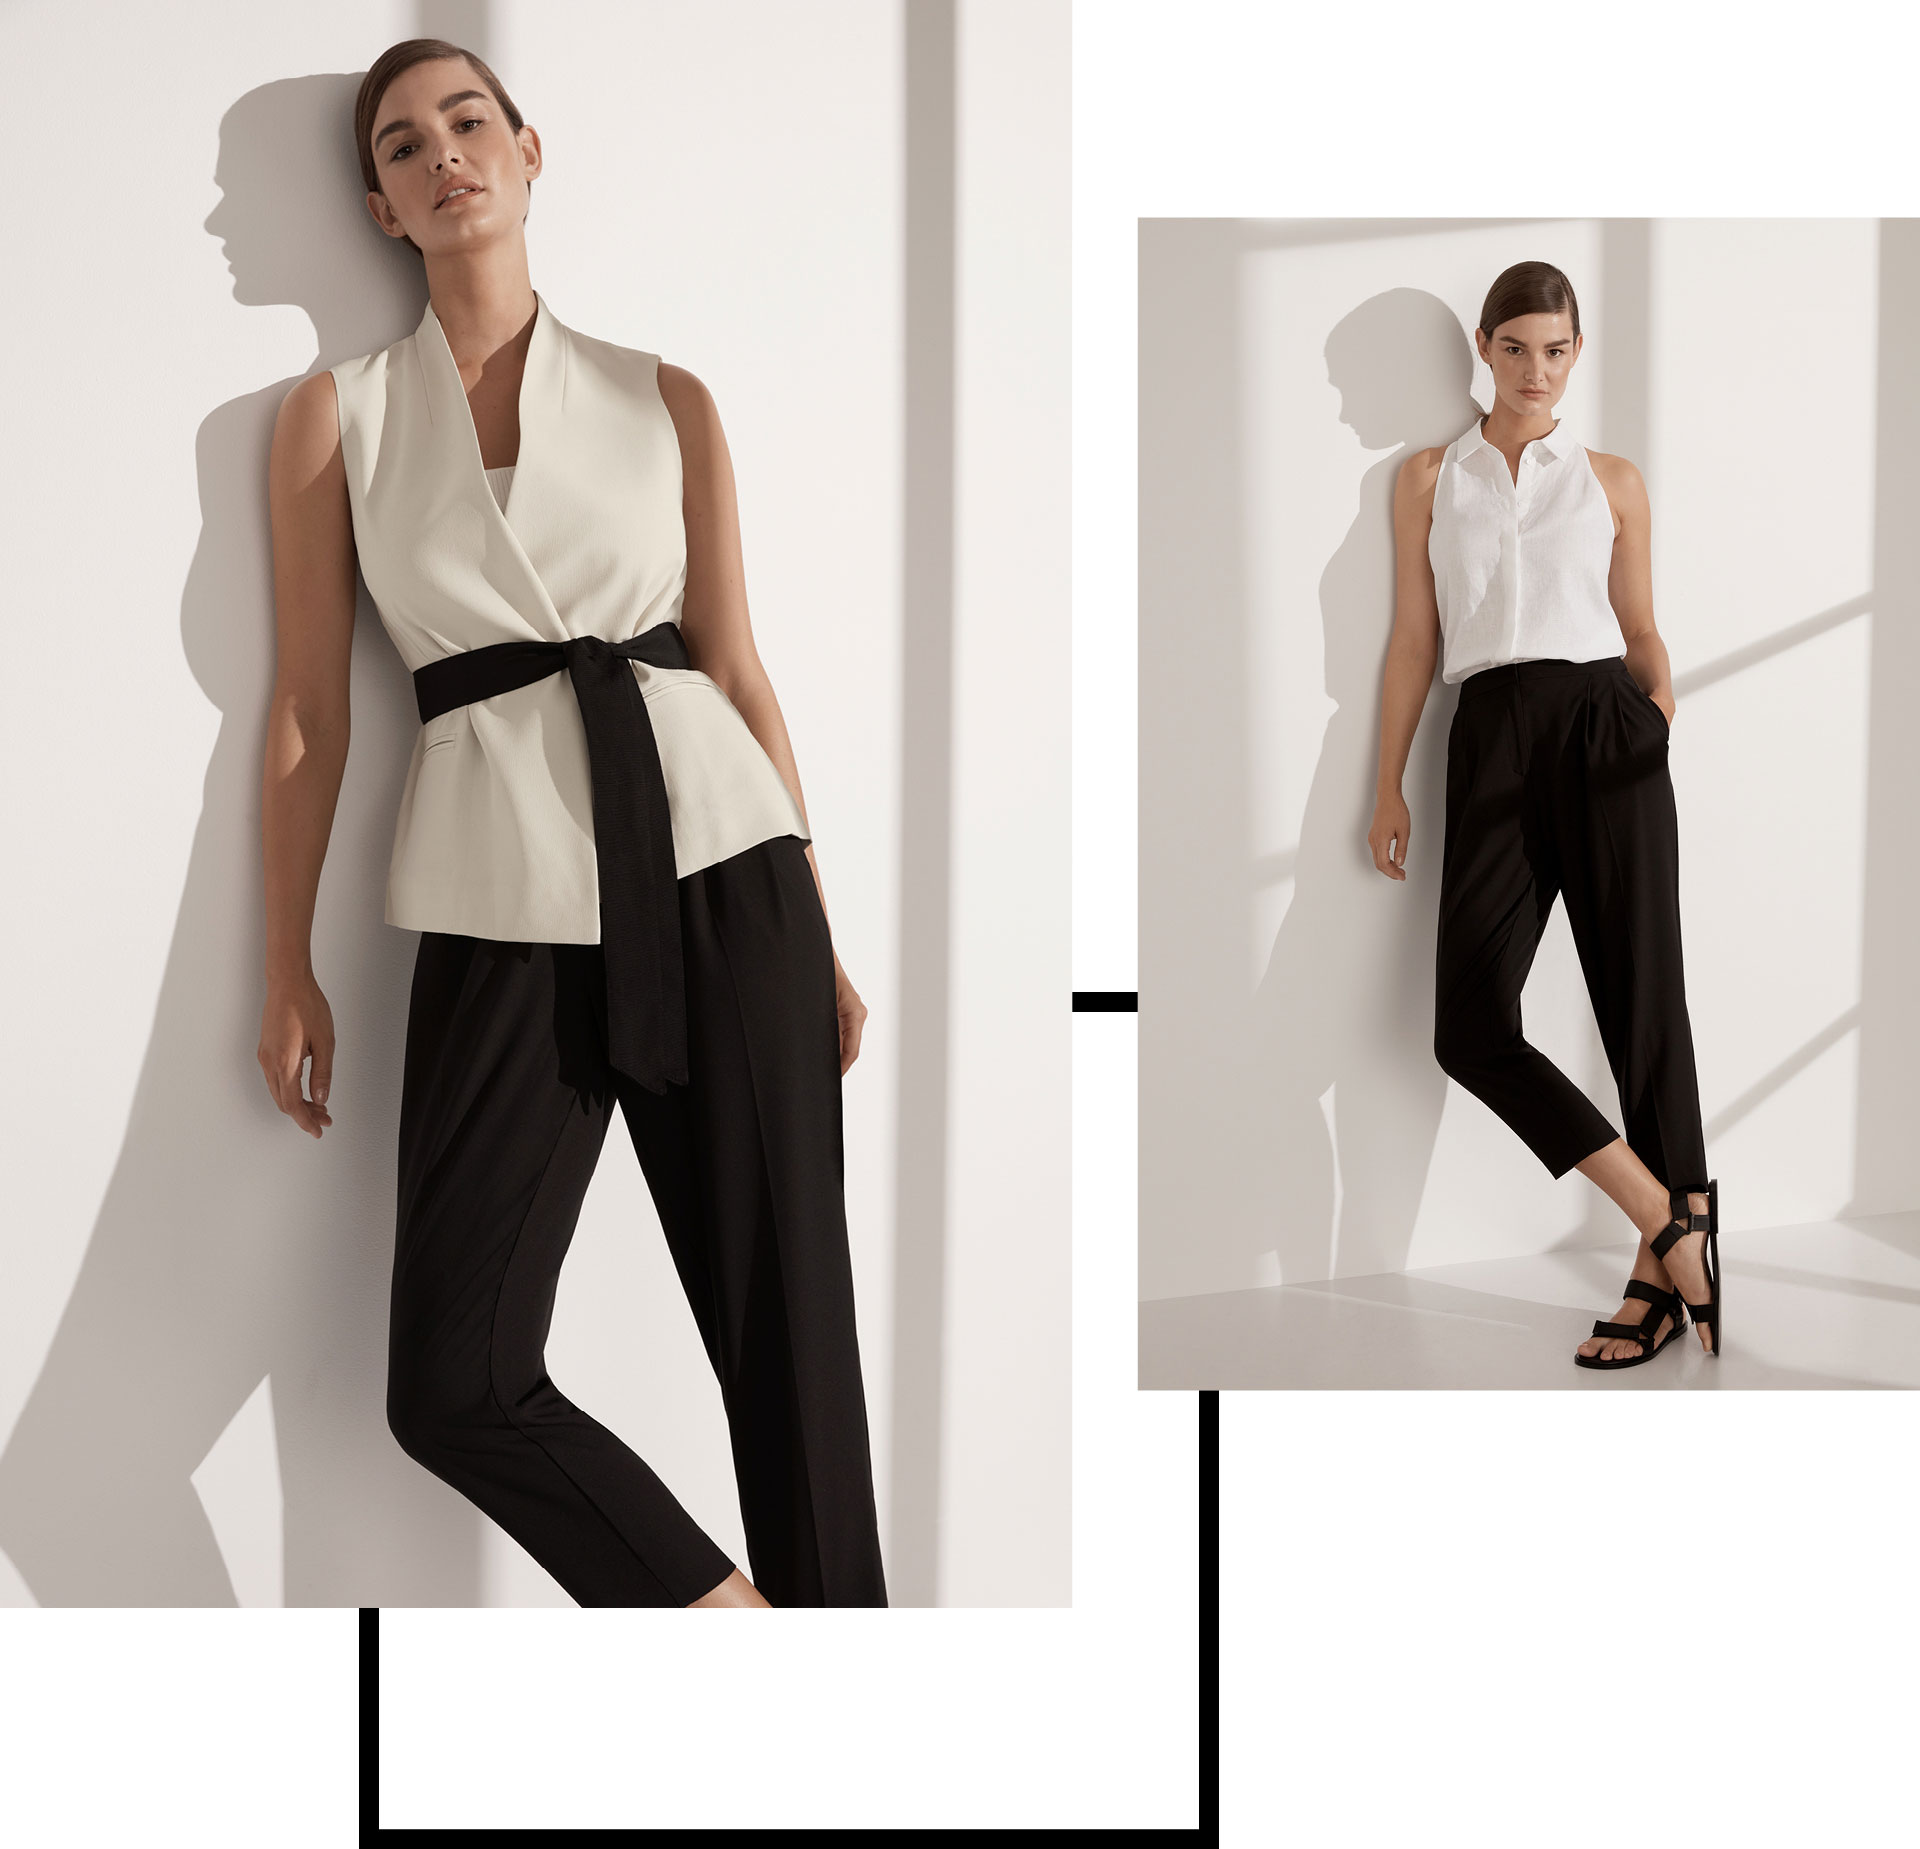 Woman on the left wearing the Tie Vest and Soft Tapered Pant. Woman on the right wearing the Sleeveless Halter Shirt, Soft Tapered Pant and Catalina Sandal